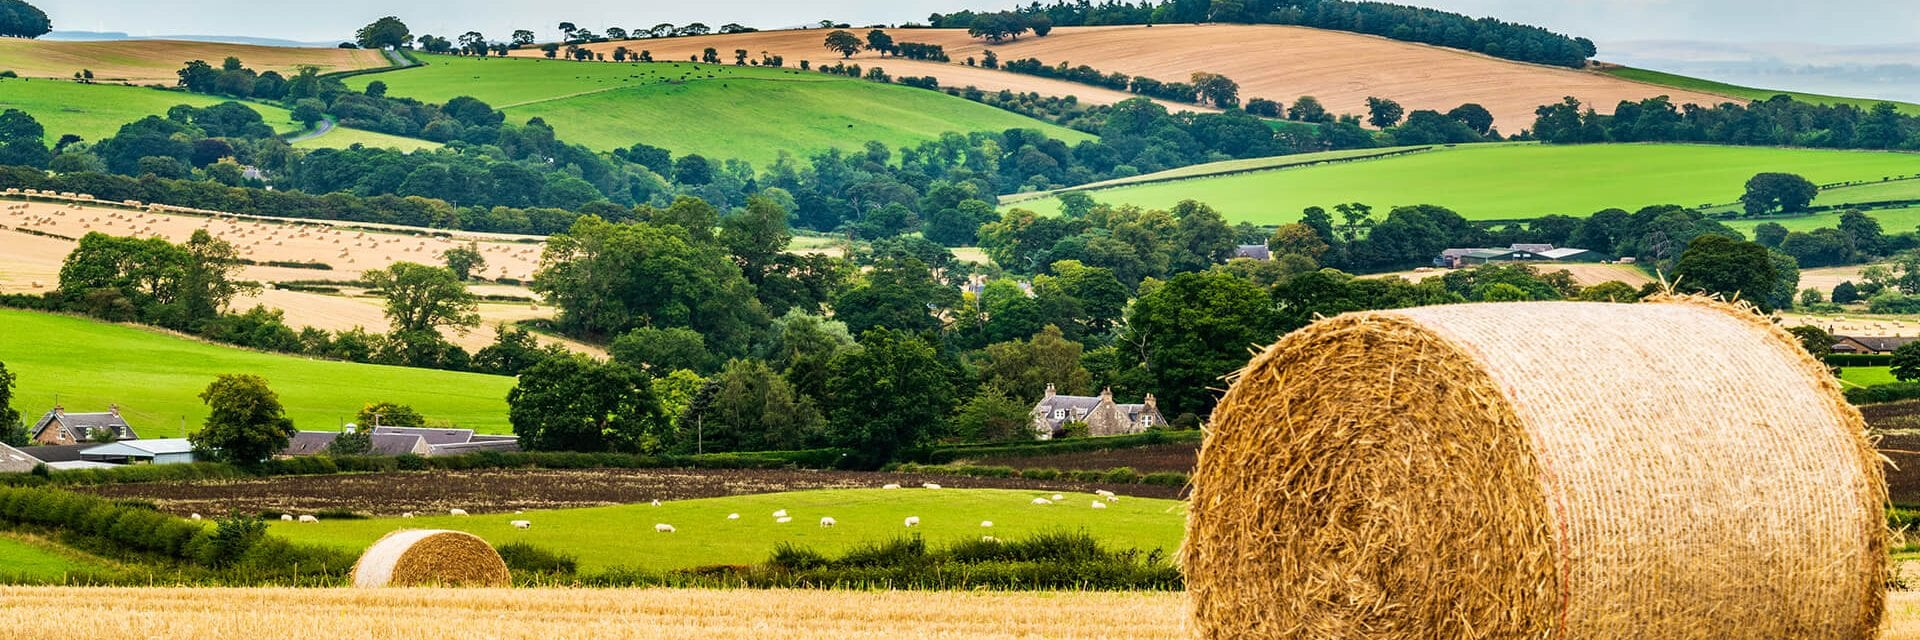 Rolling hills in the Scottish Borders with freshly harvested field and hay bale in the foreground